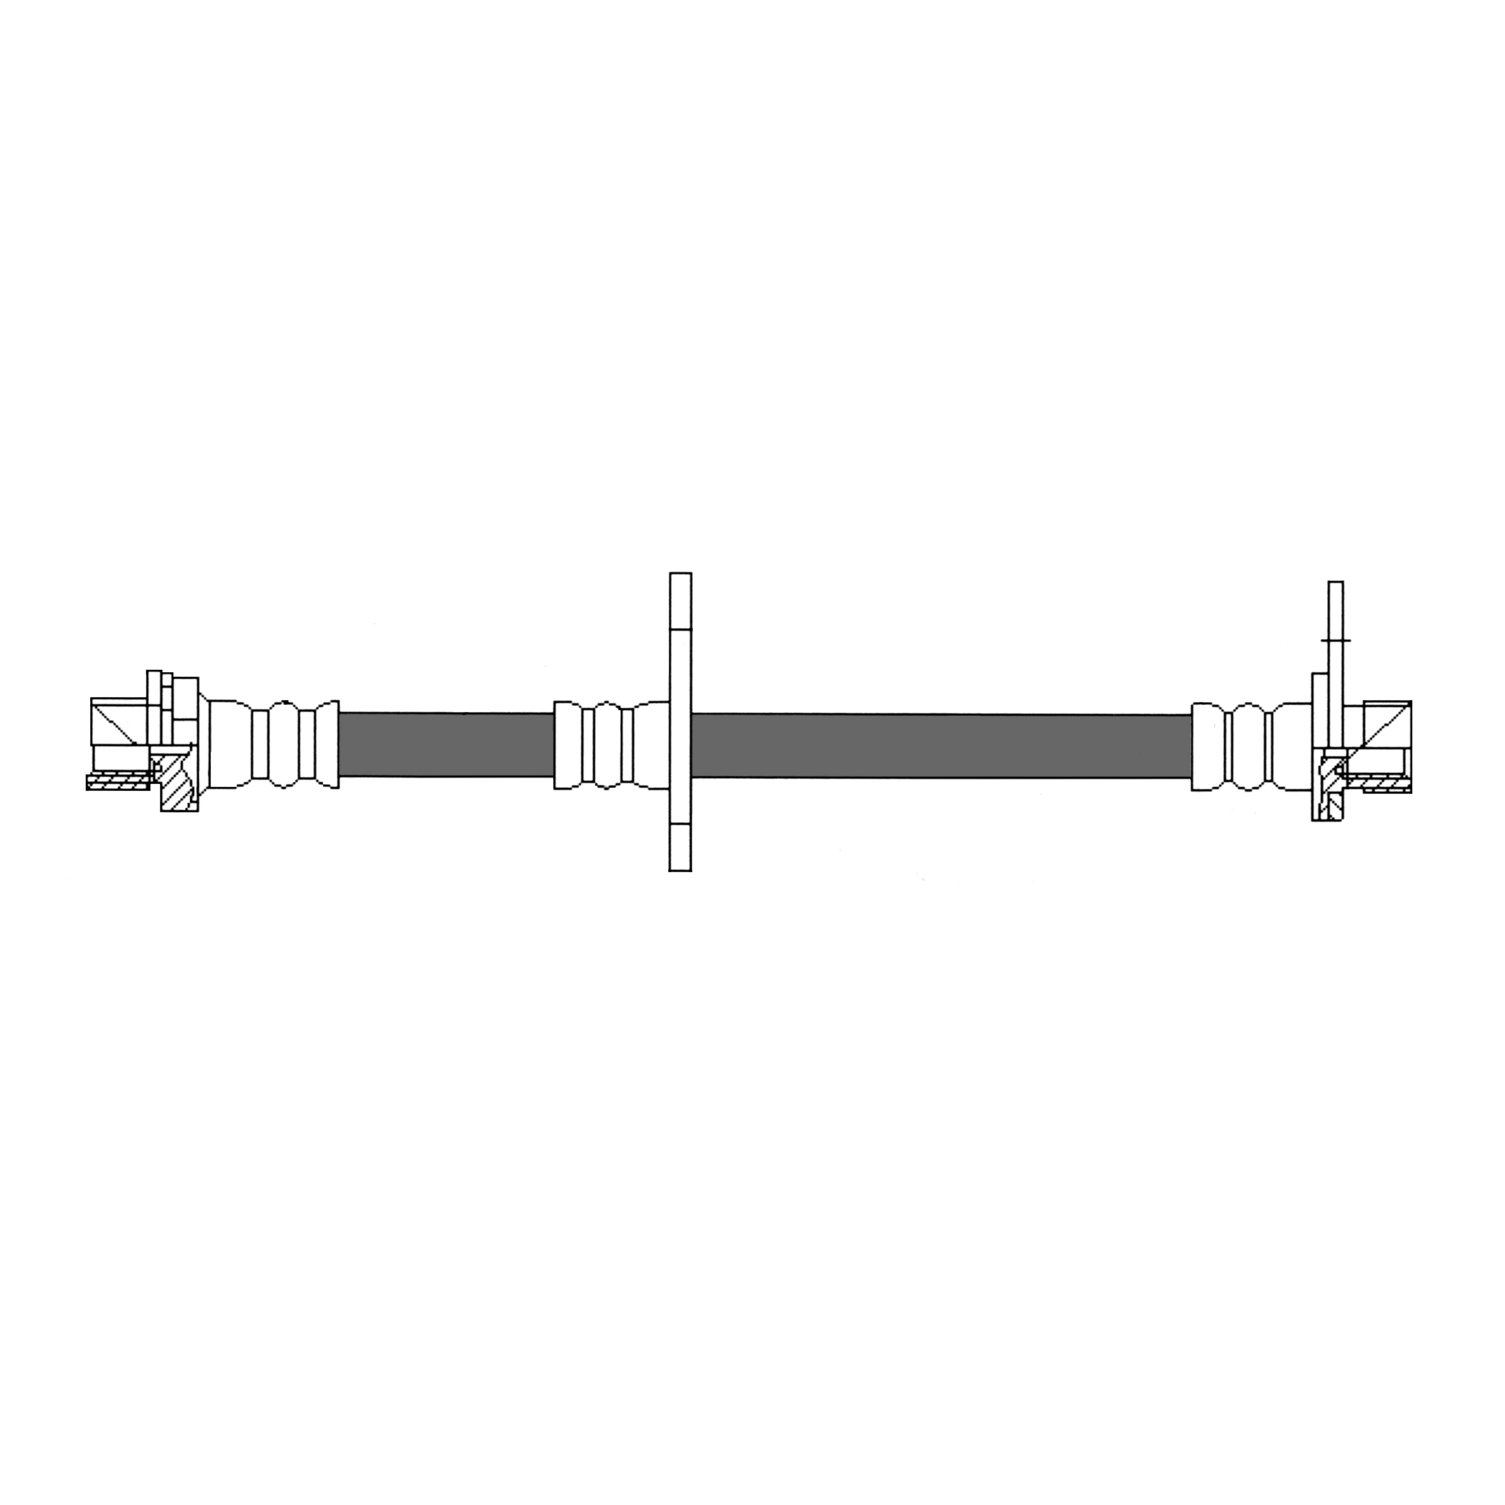 ... 2003 Toyota Sequoia Brake Hydraulic Hose CE 150.44395 ...